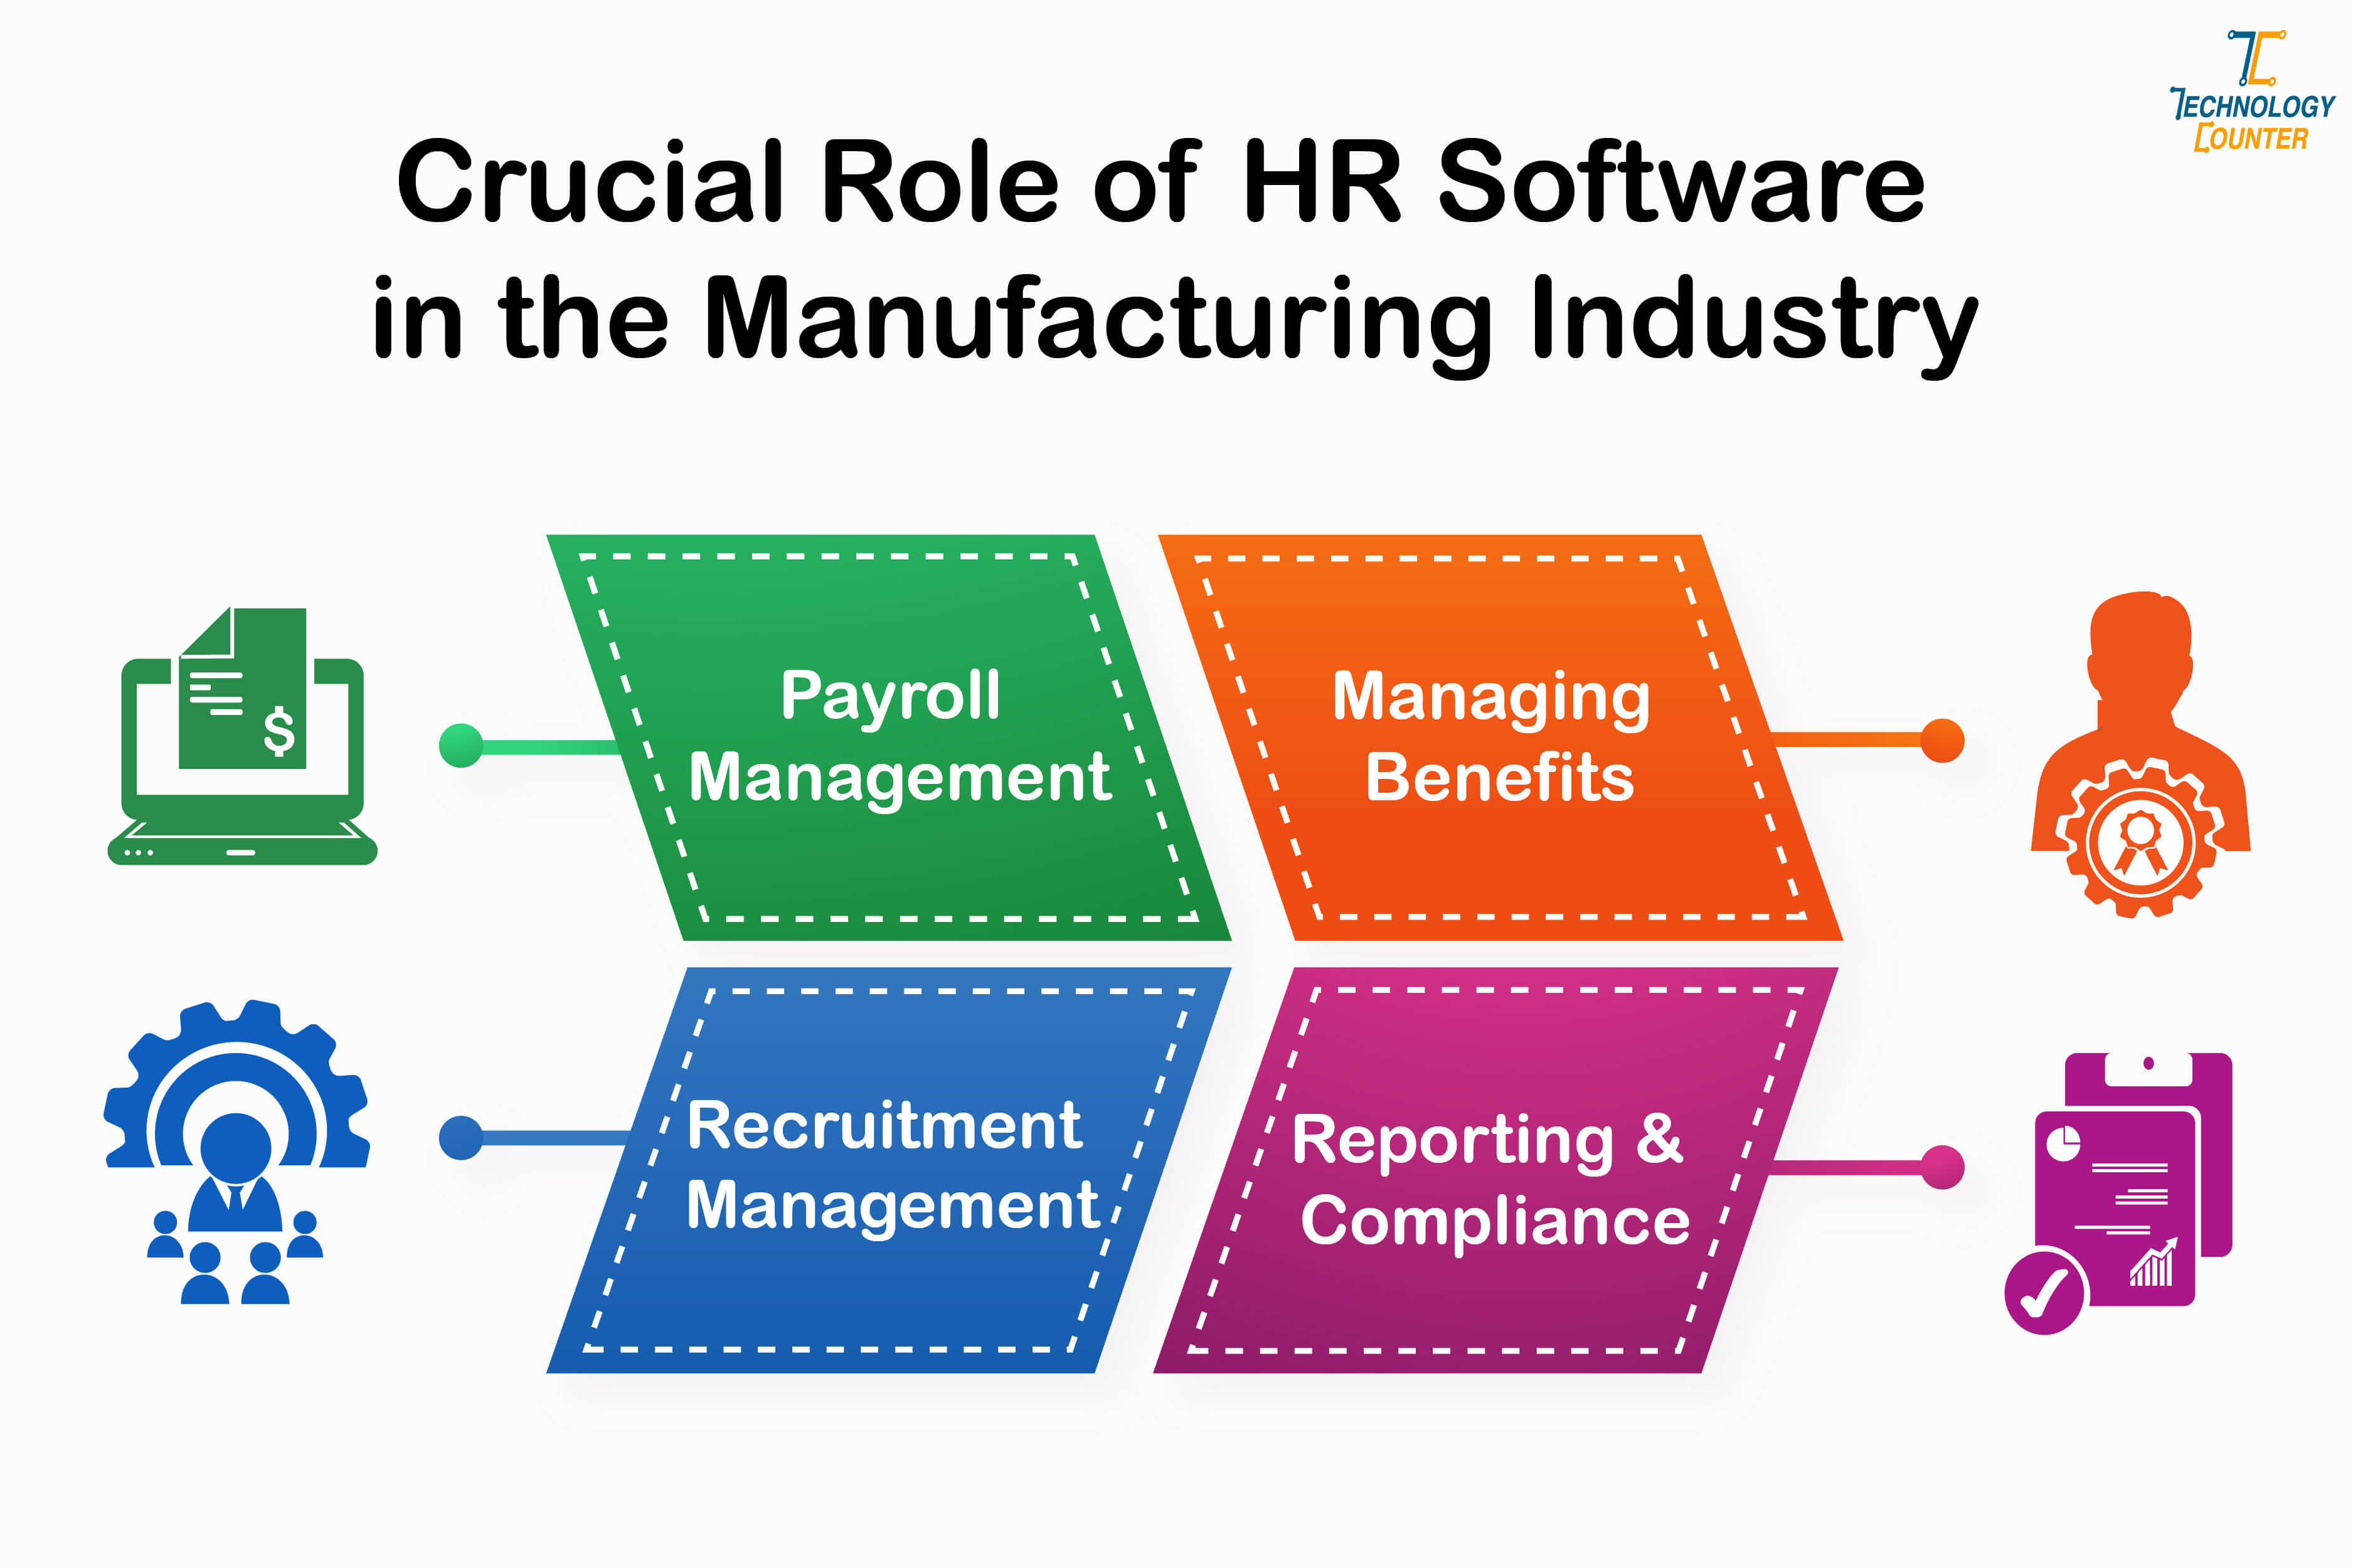 Crucial Role of HR Software in the Manufacturing Industry